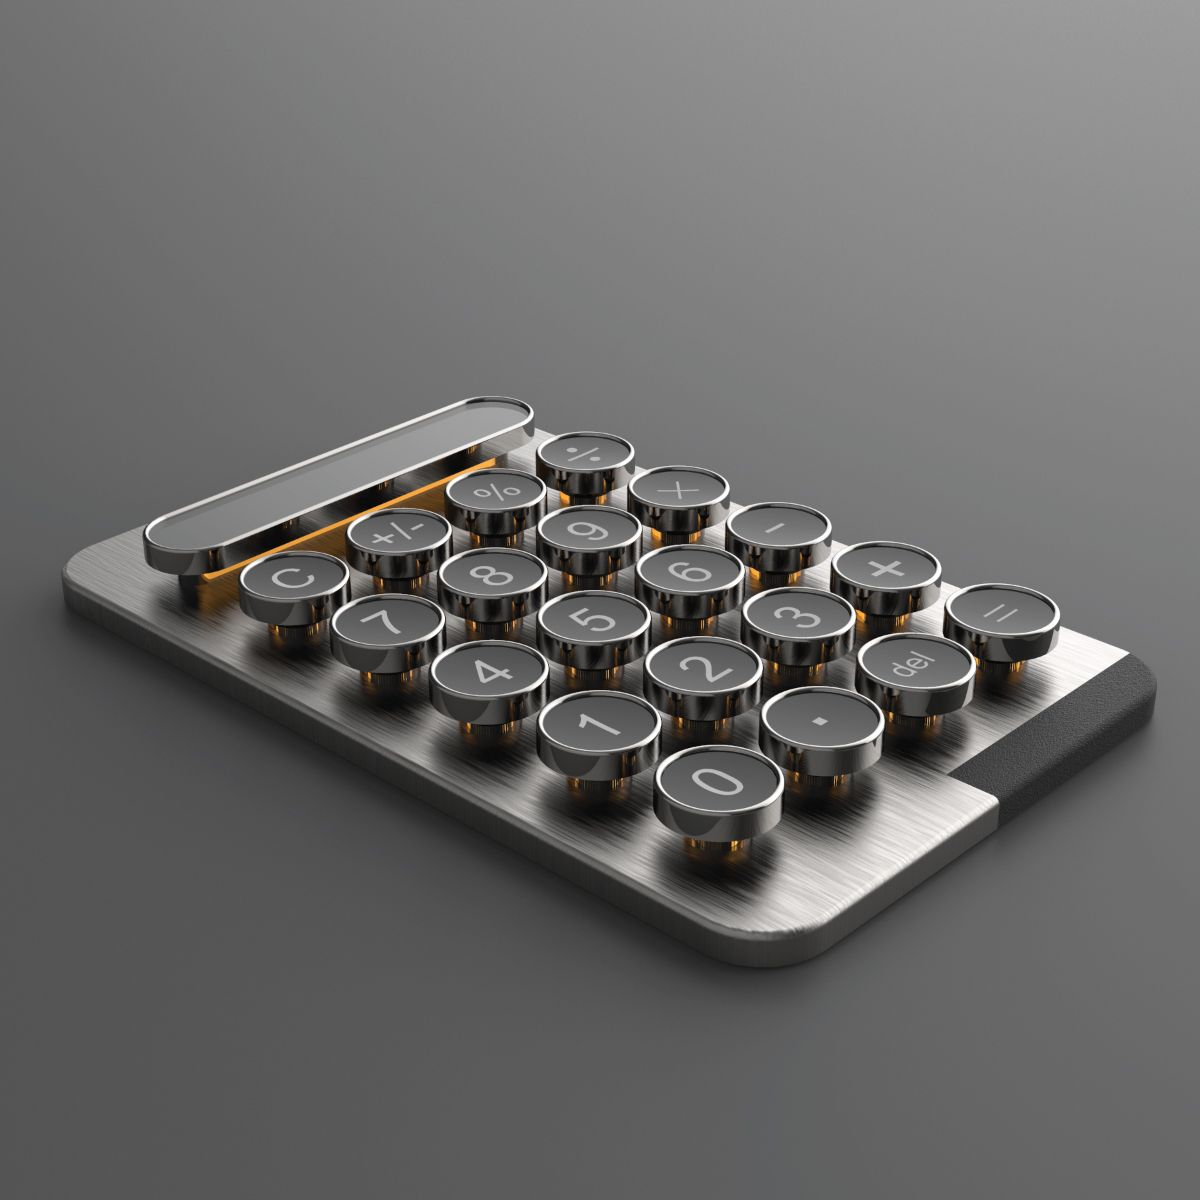 Calculator Concept Design, Designed In Autodesk Fusion 360